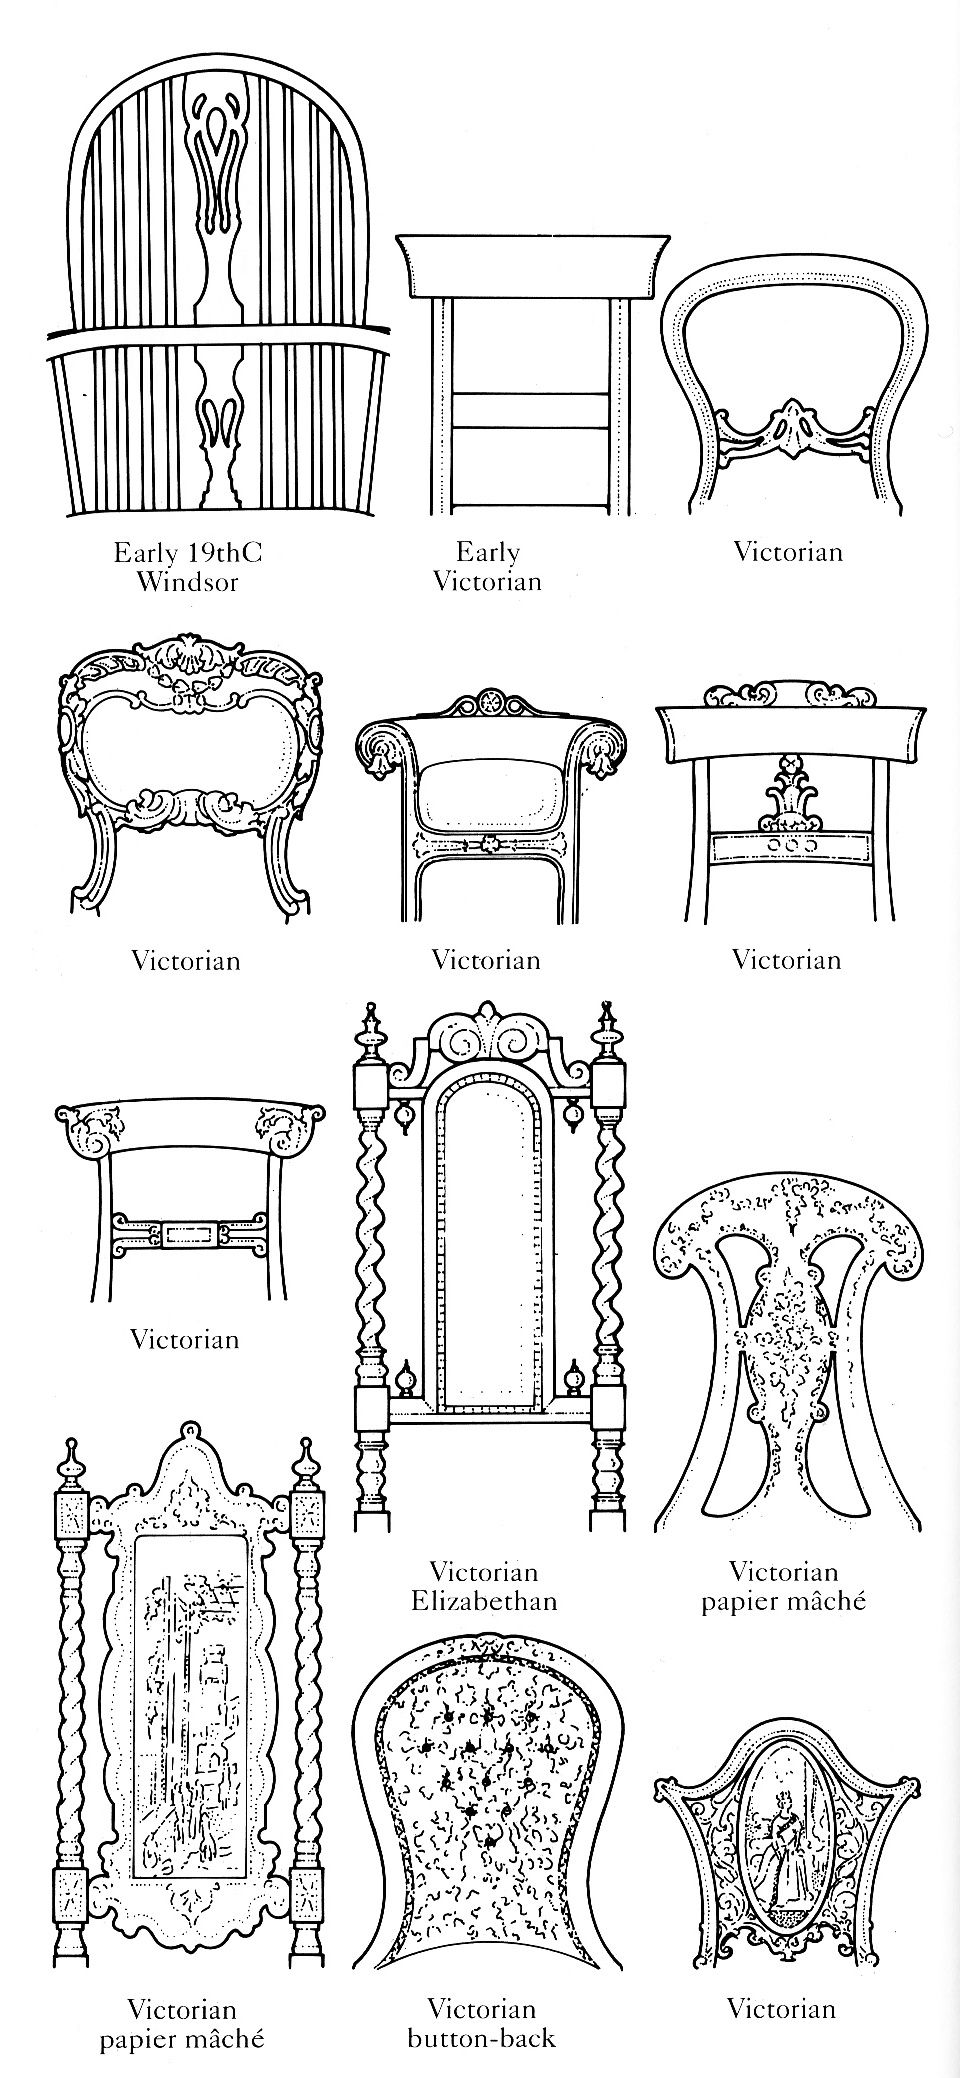 Diagram Of British Chair Backs Early 19th Century To Victorian Antique Furniture Vintage Victorian Furniture Vintage Furniture